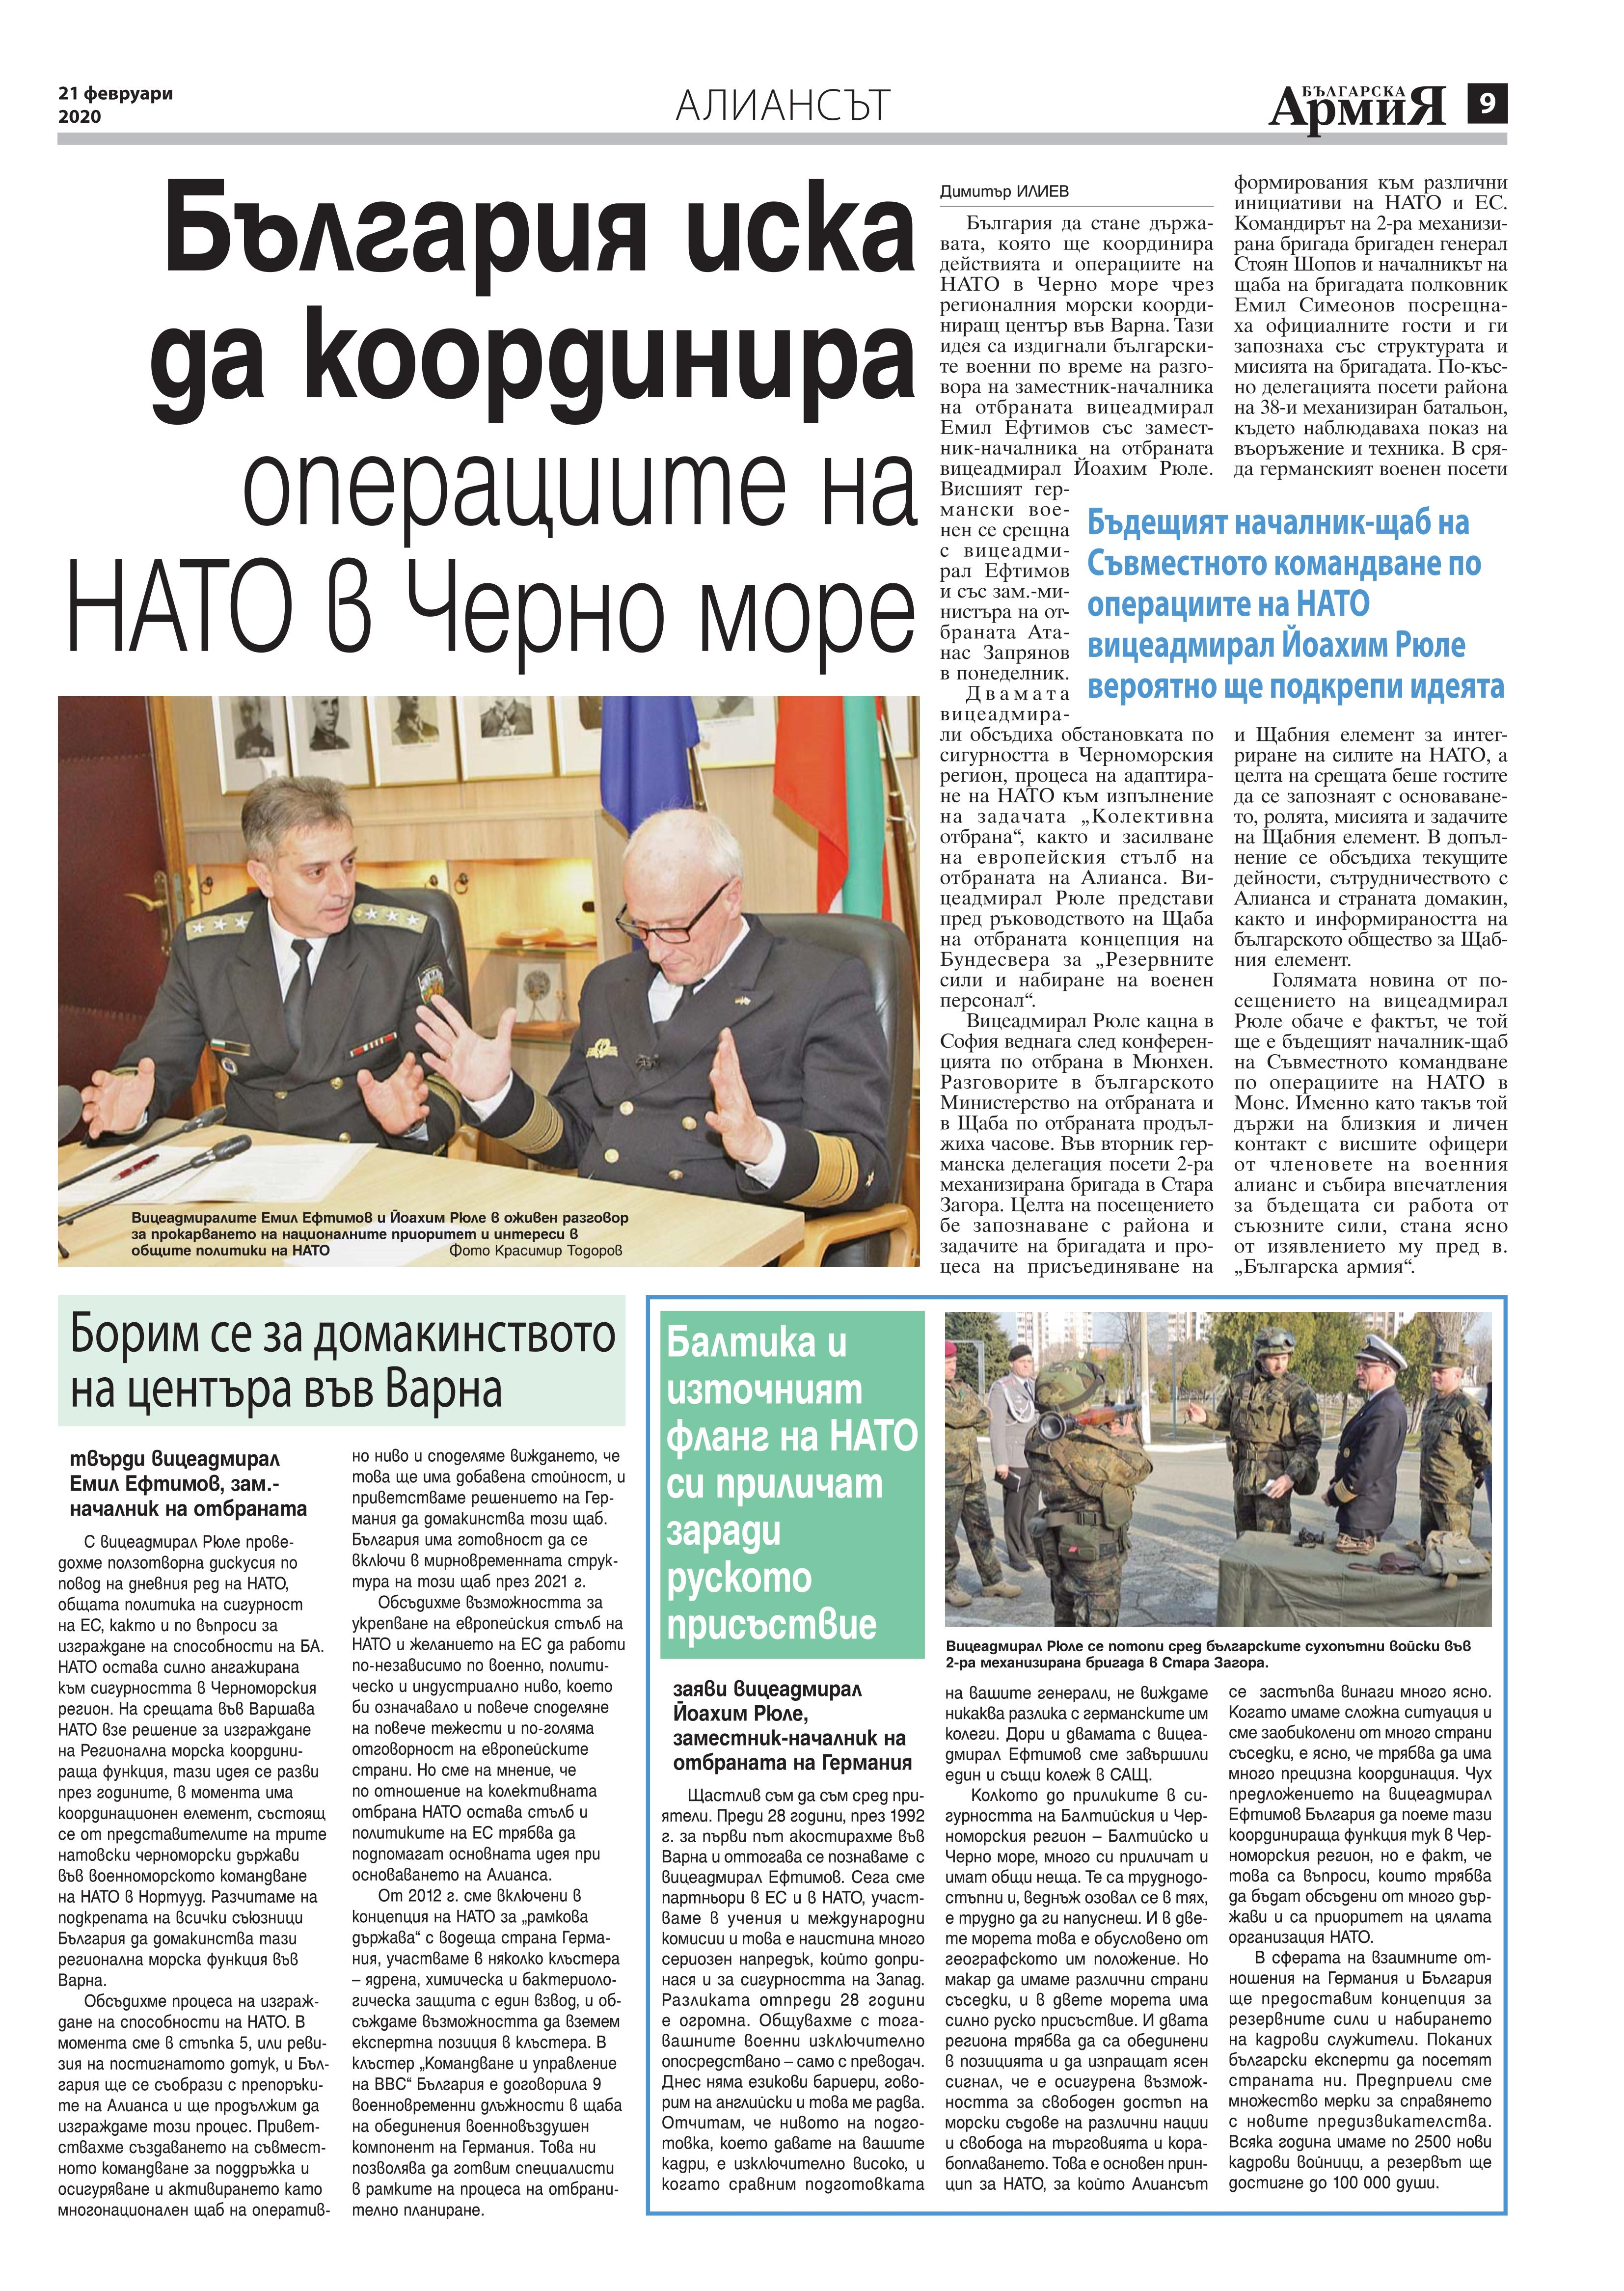 https://armymedia.bg/wp-content/uploads/2015/06/09.page1_-125.jpg